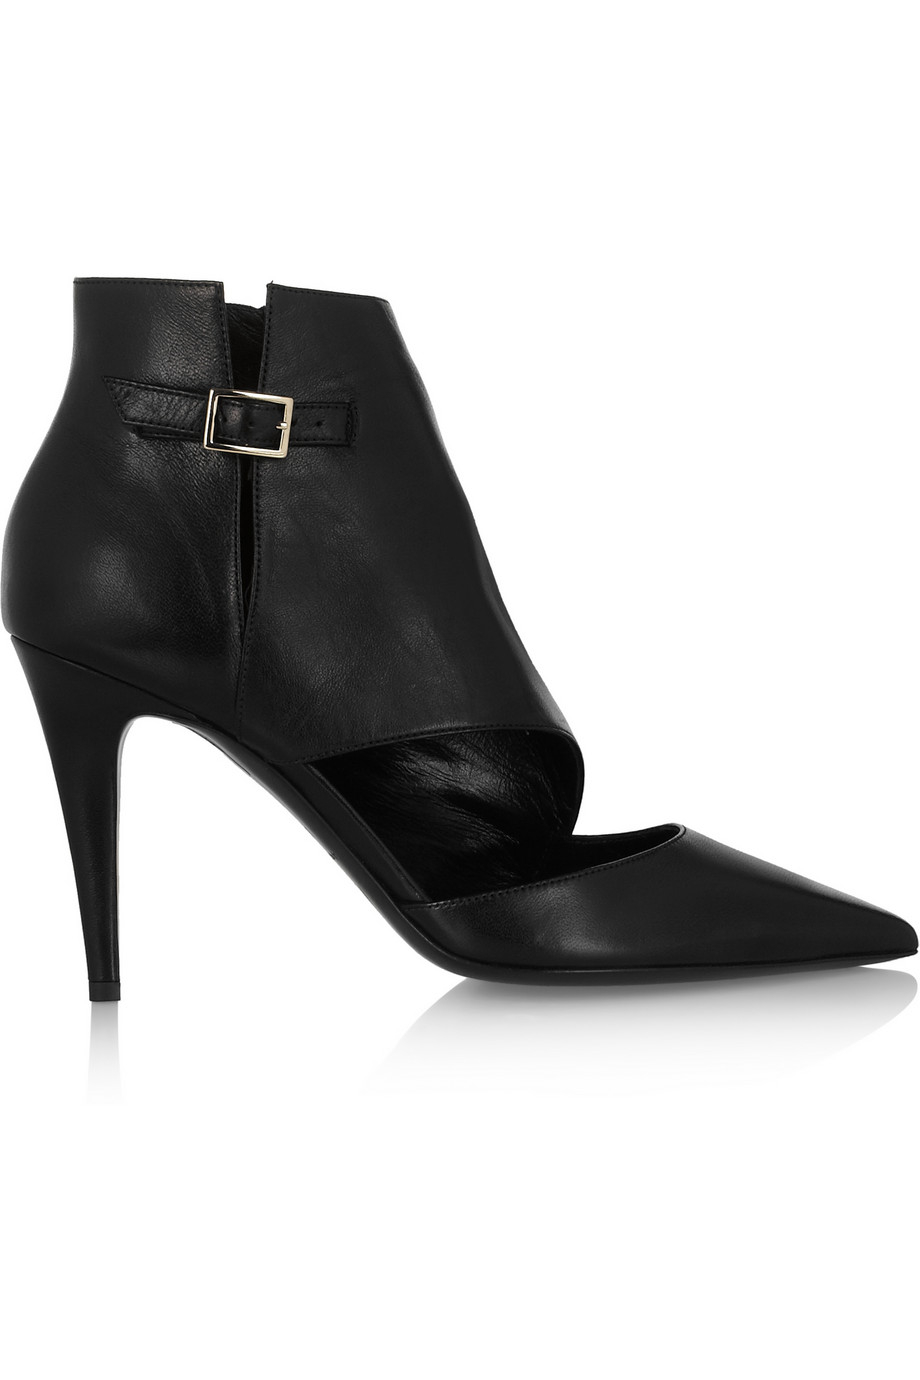 32f8adcafb9 Tamara Mellon Madness Cutout Leather Ankle Boots in Black - Lyst